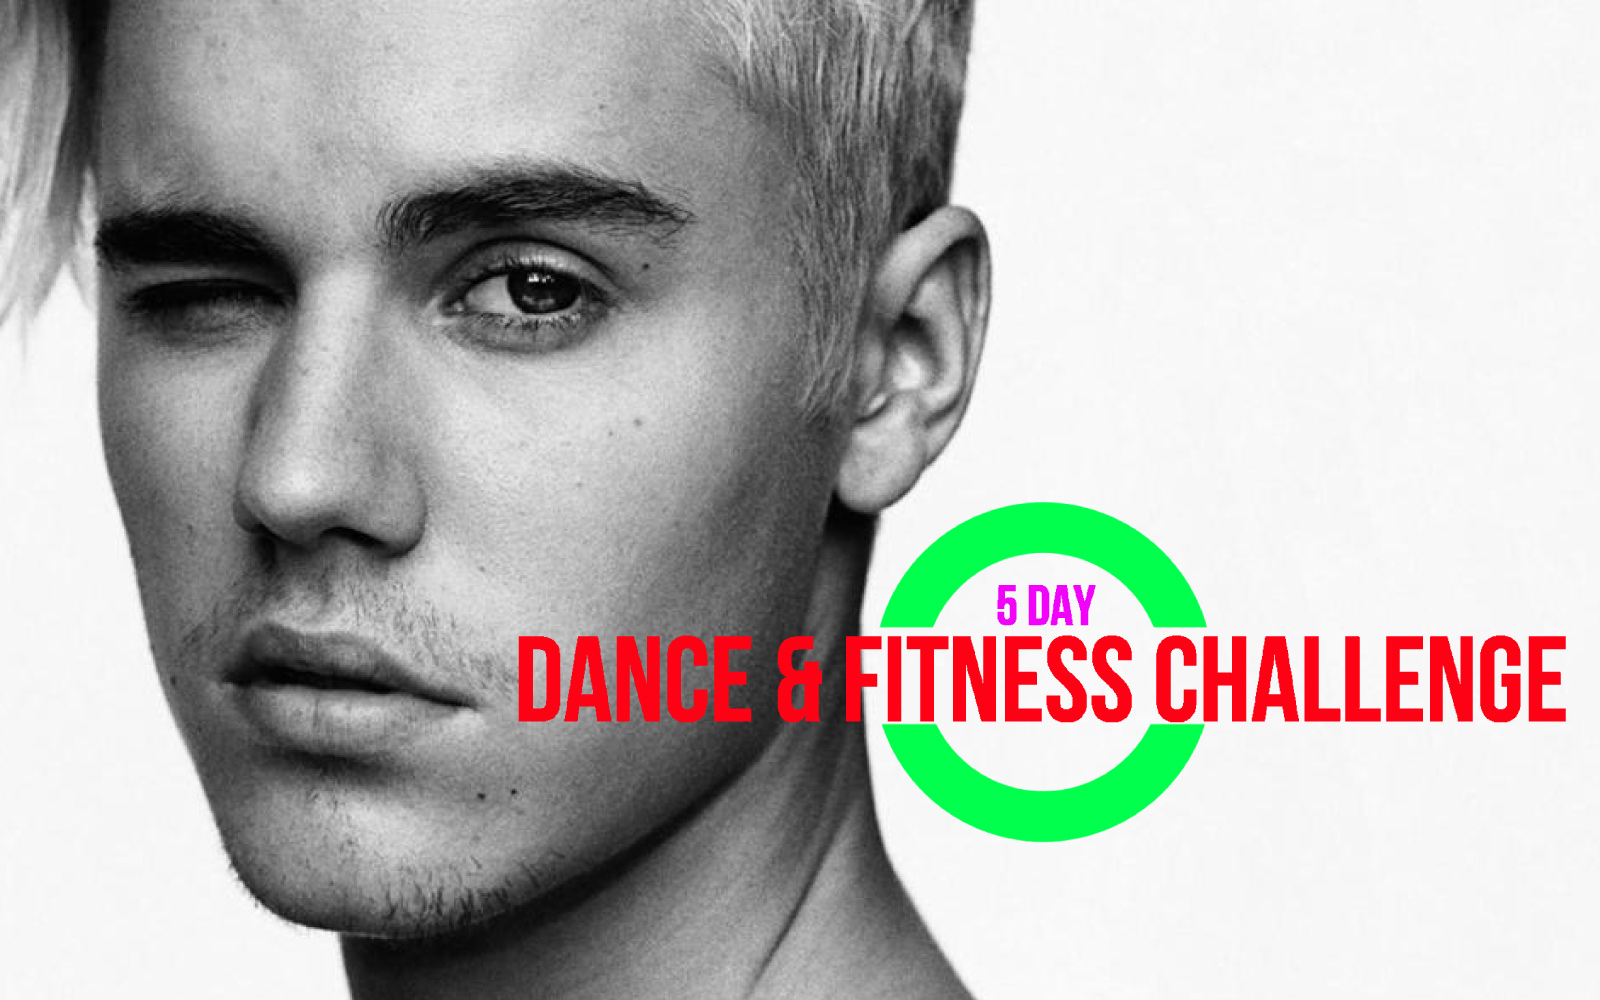 5-day-dance-and-fitness-challeng-at-Body-electric-dance-studios